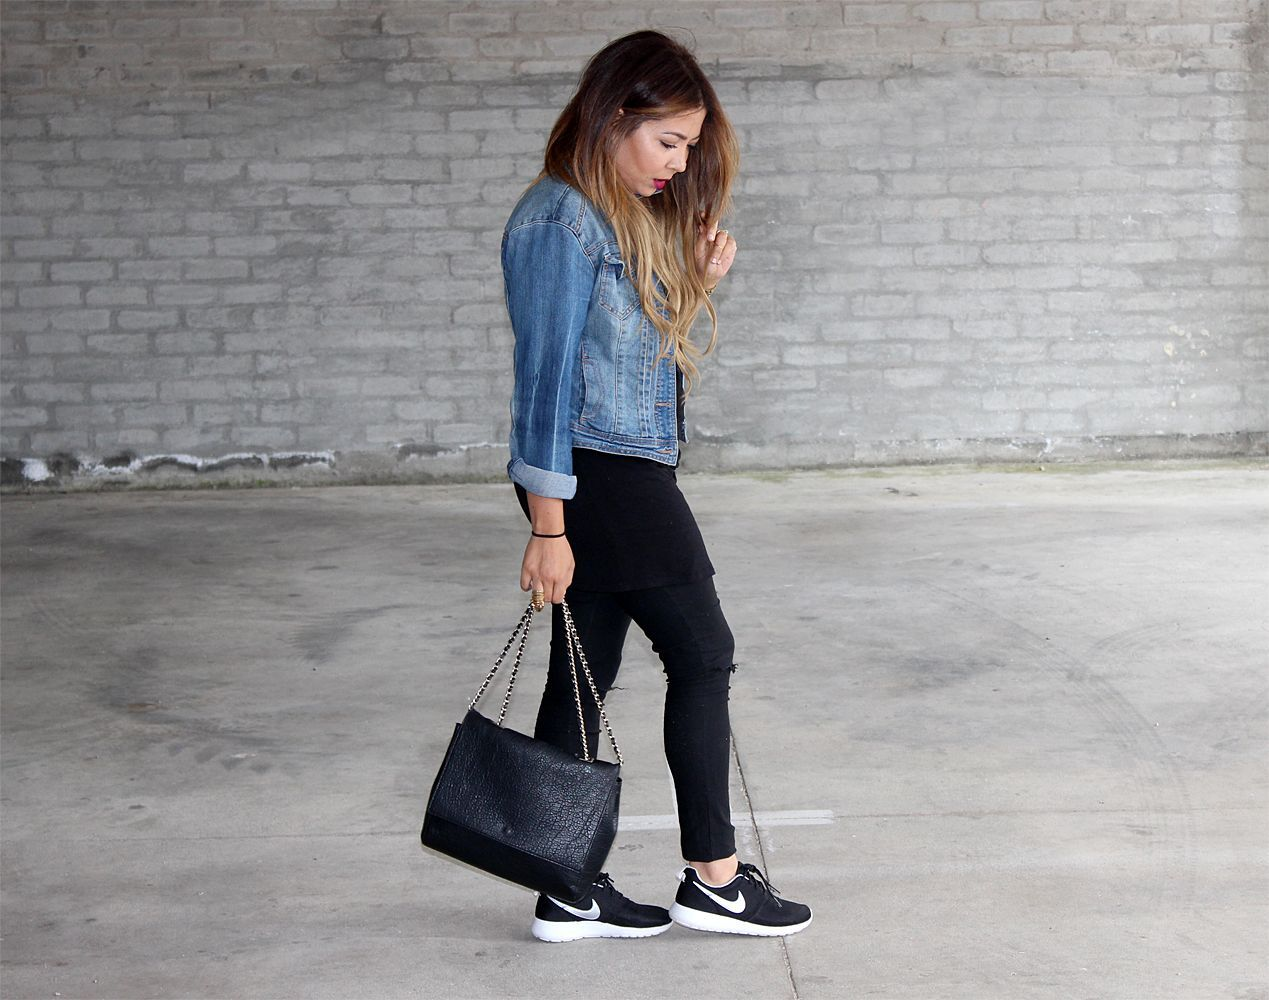 online store 29c94 eb24f nike roshe run-Black ripped jeans Denim Jacket. Simple and Chic